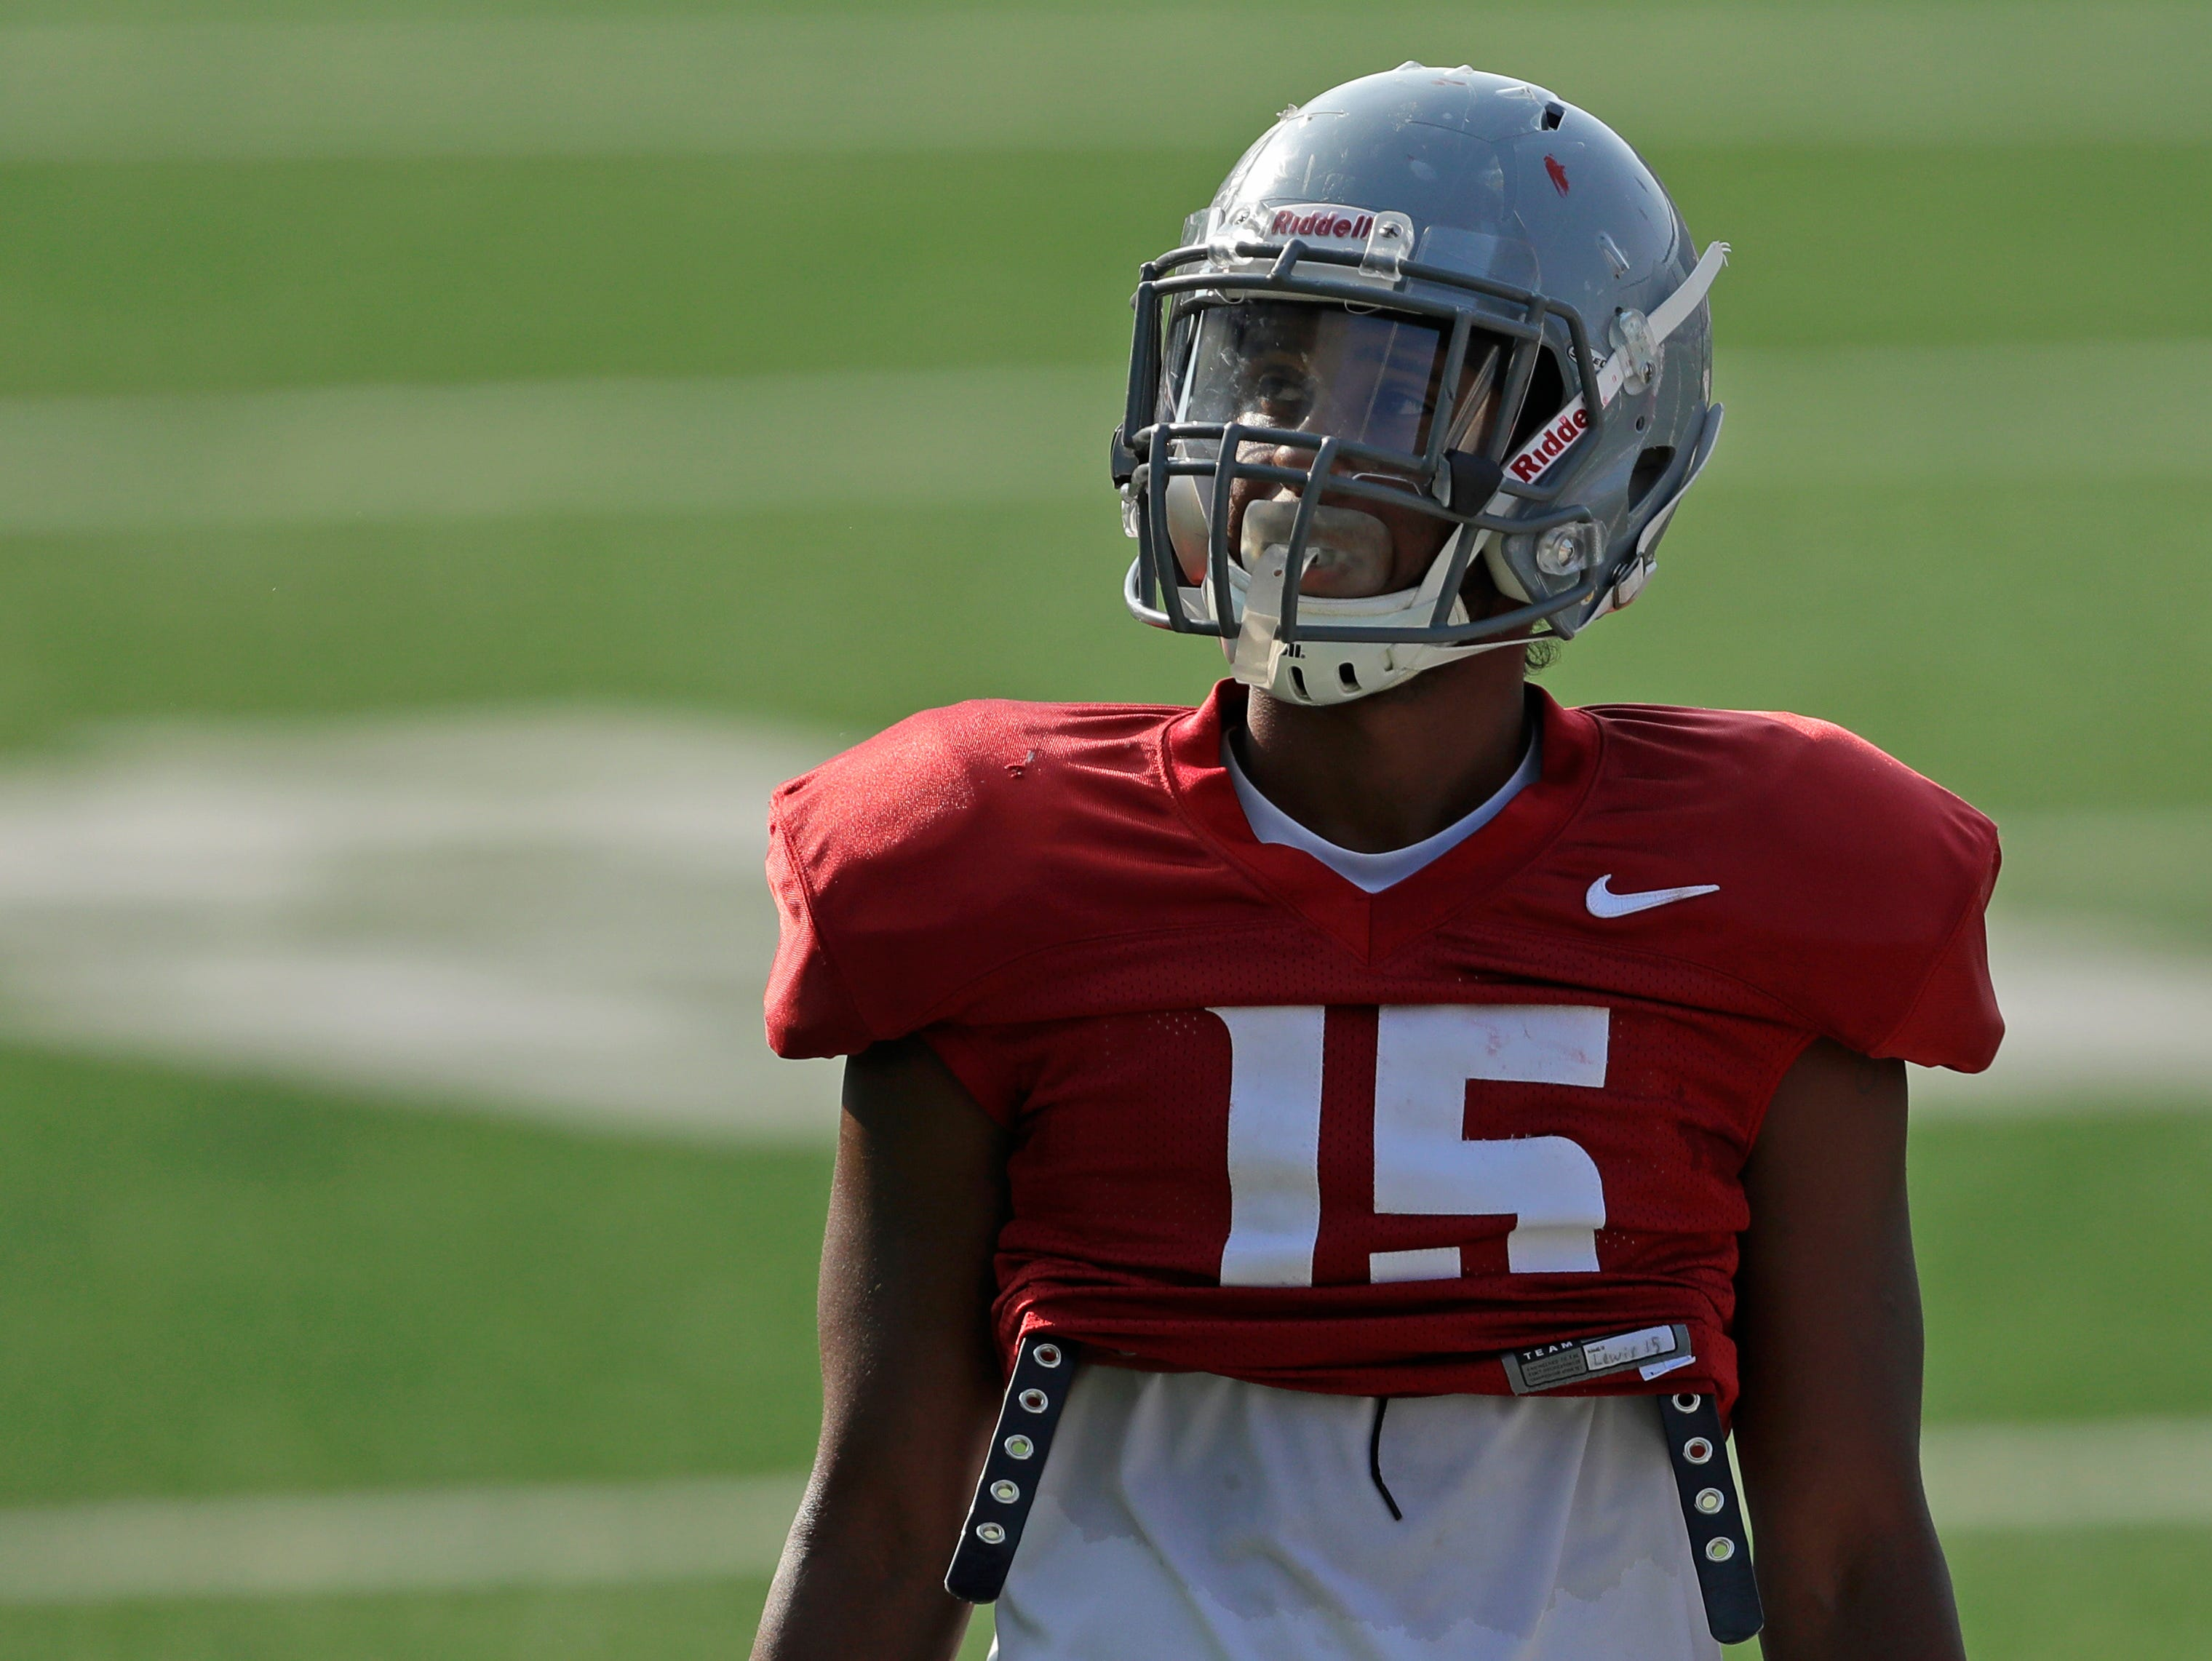 Robert Lewis is a key member of Washington State's deep receiver corps.